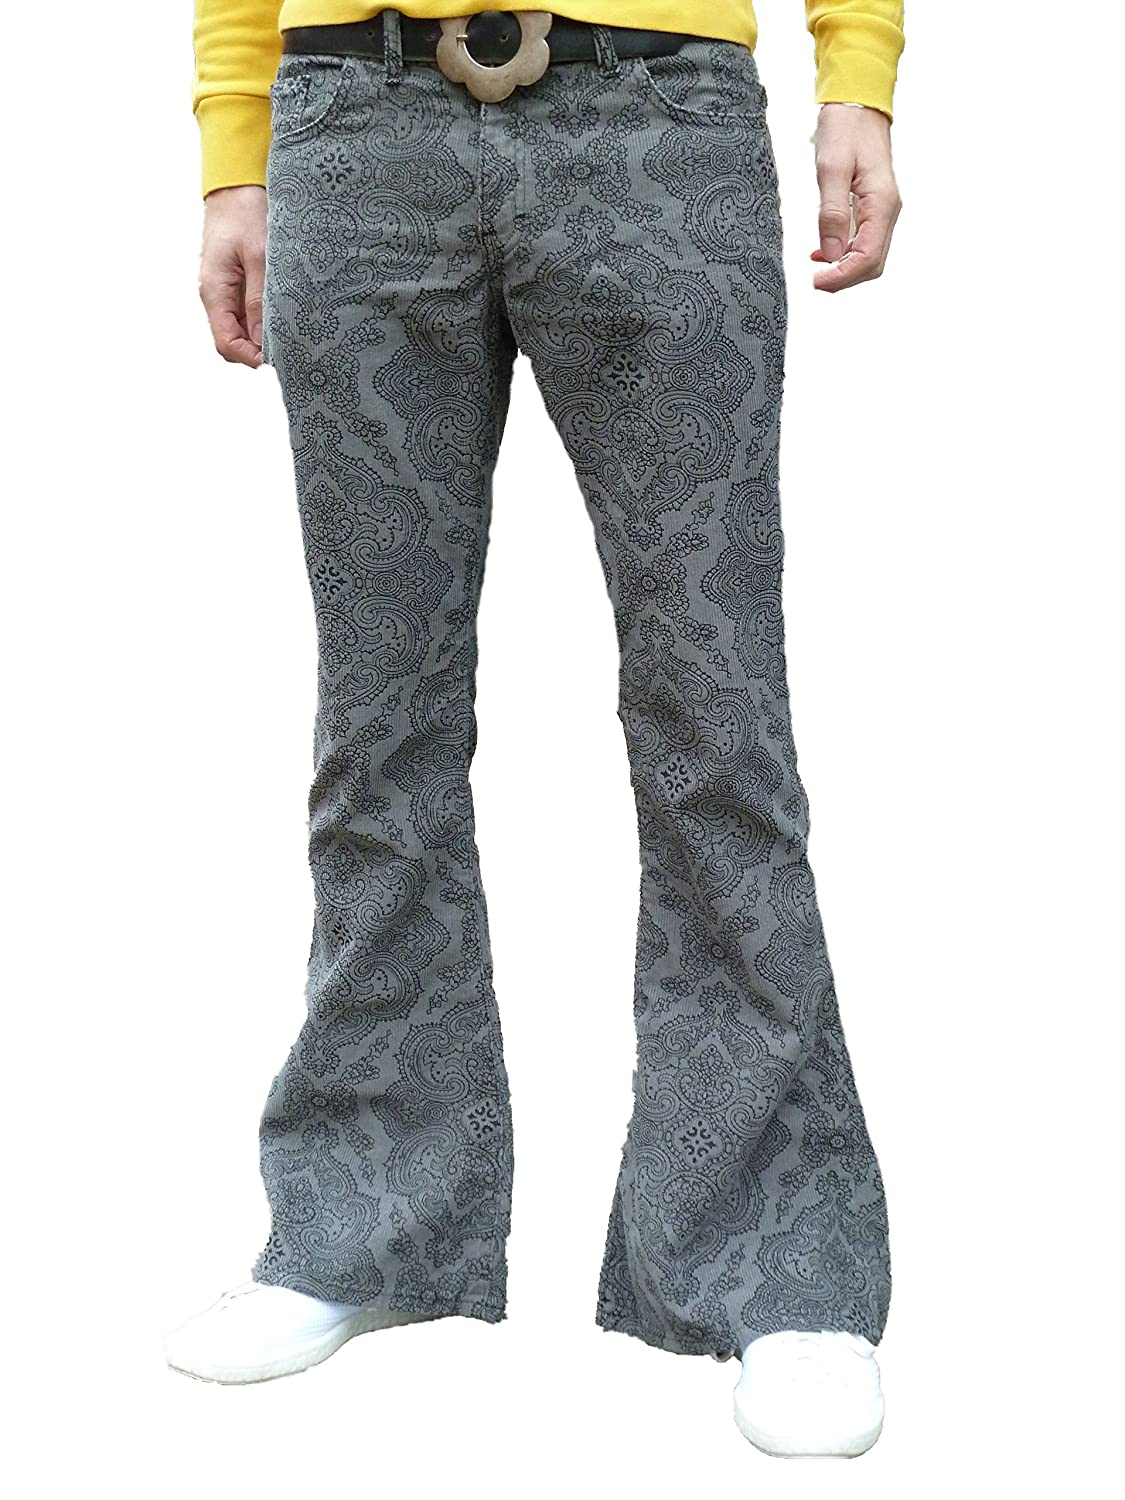 1960s Men's Clothing, 70s Men's Fashion Mens Paisley Corduroy Bell Bottoms Flares Gray Pants Trousers Jeans Retro Hippie MOD Indie $50.60 AT vintagedancer.com